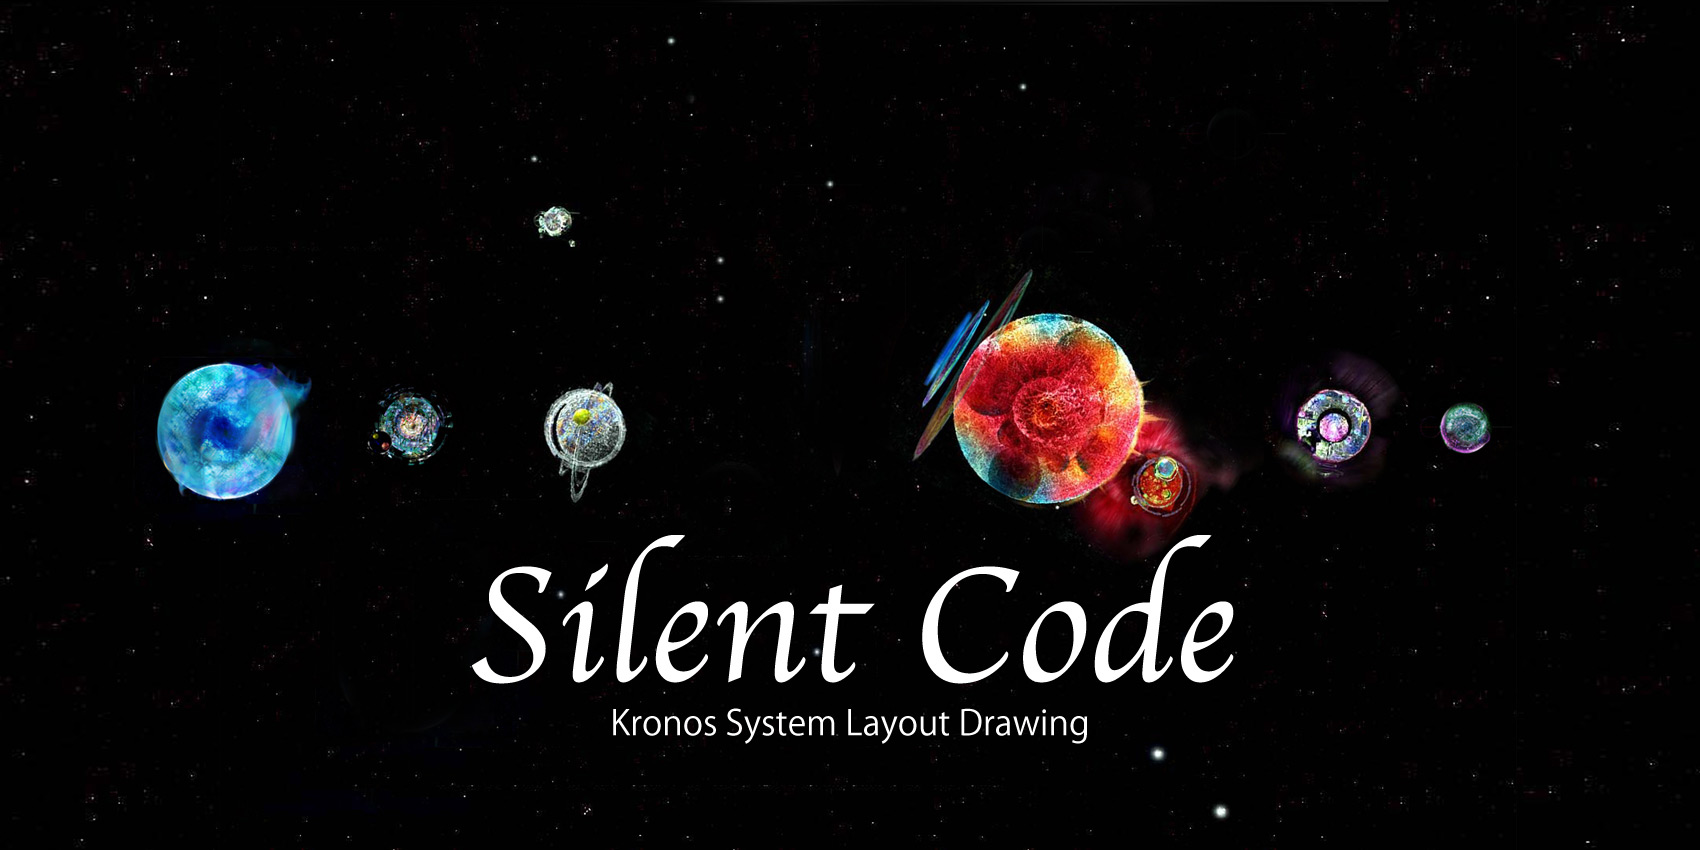 Silent Code - Kronos System Layout Drawing